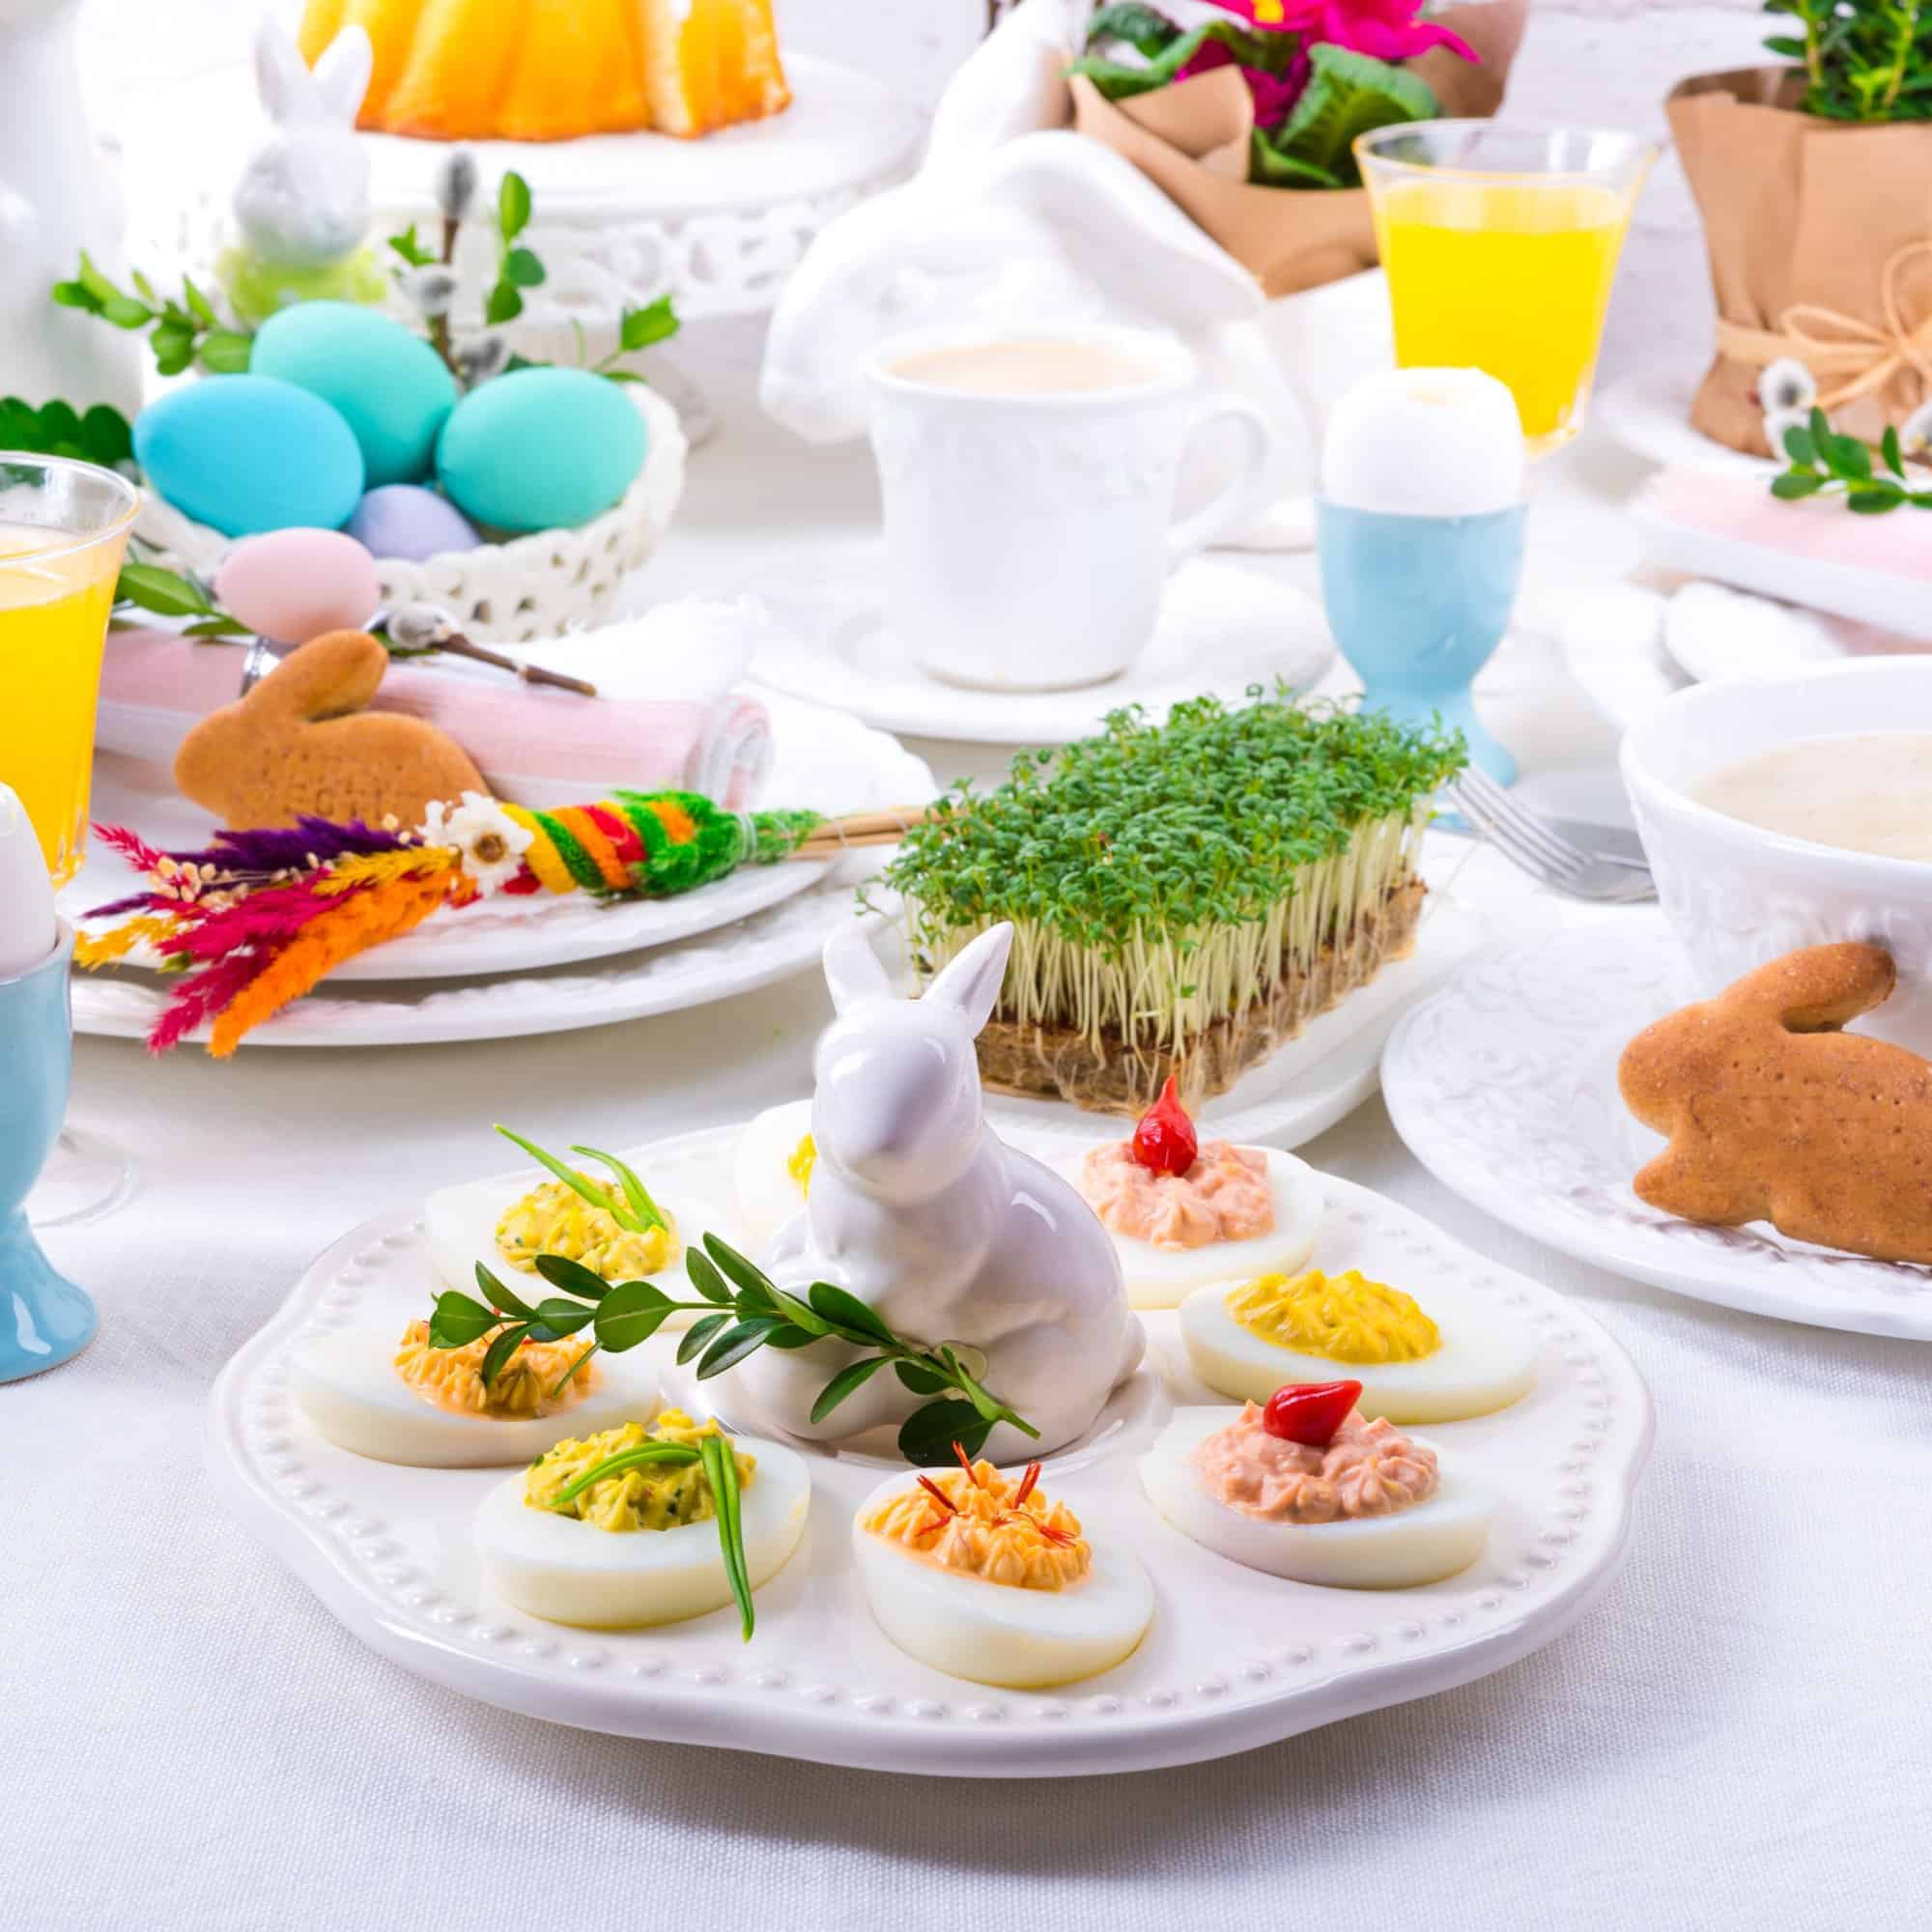 Easter Brunch table set with Easter decorations like a white bunny, deviled eggs, blue dyed Easter eggs.